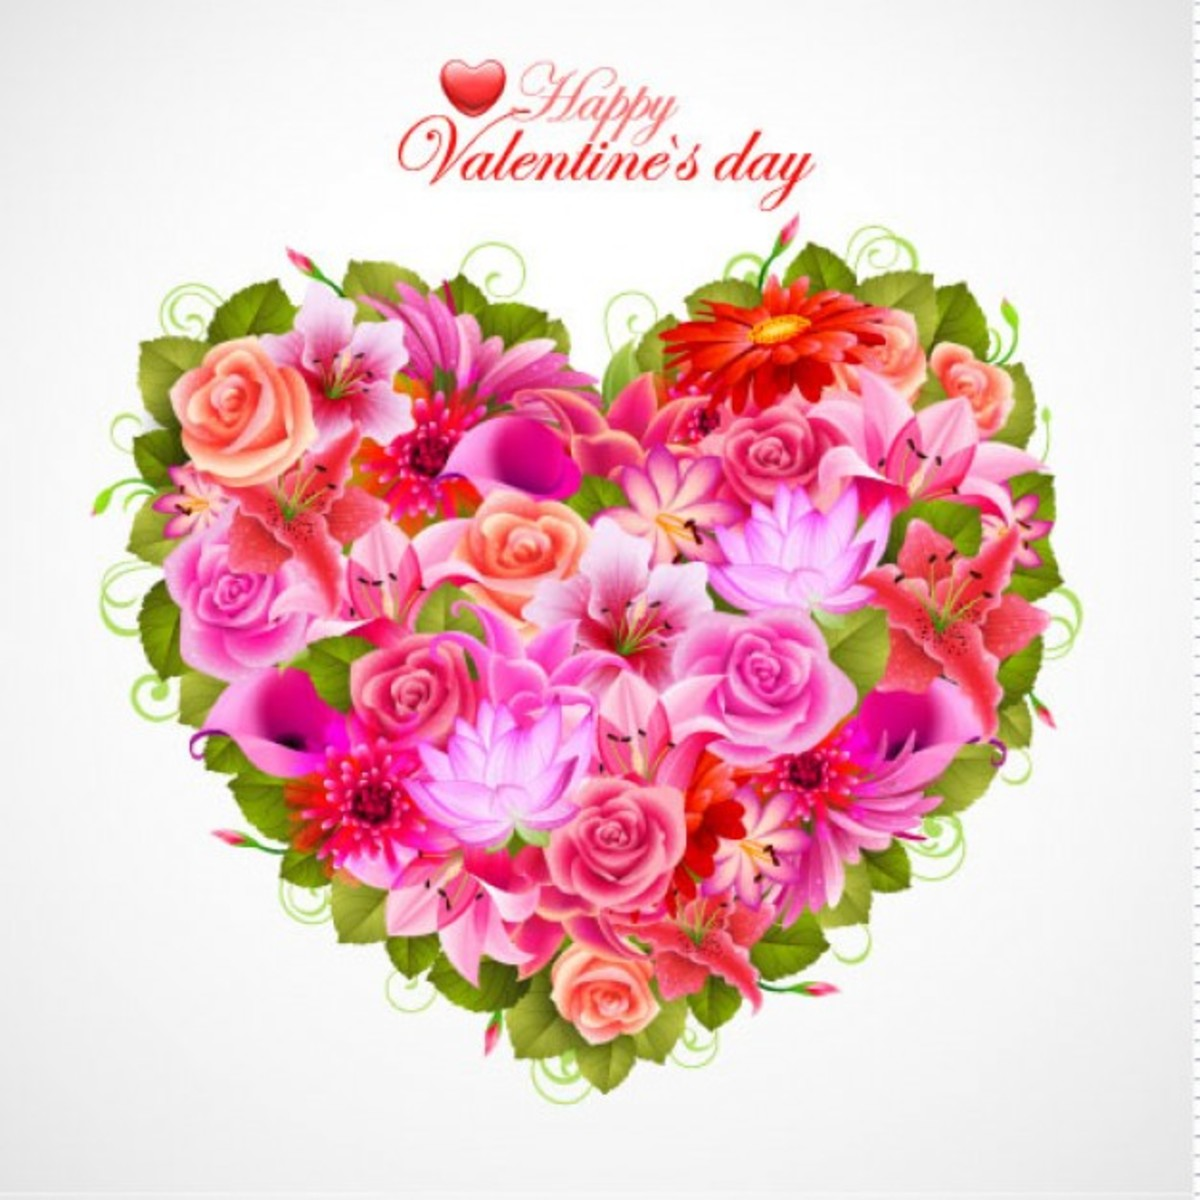 Happy Valentine's Day with Heart of Roses